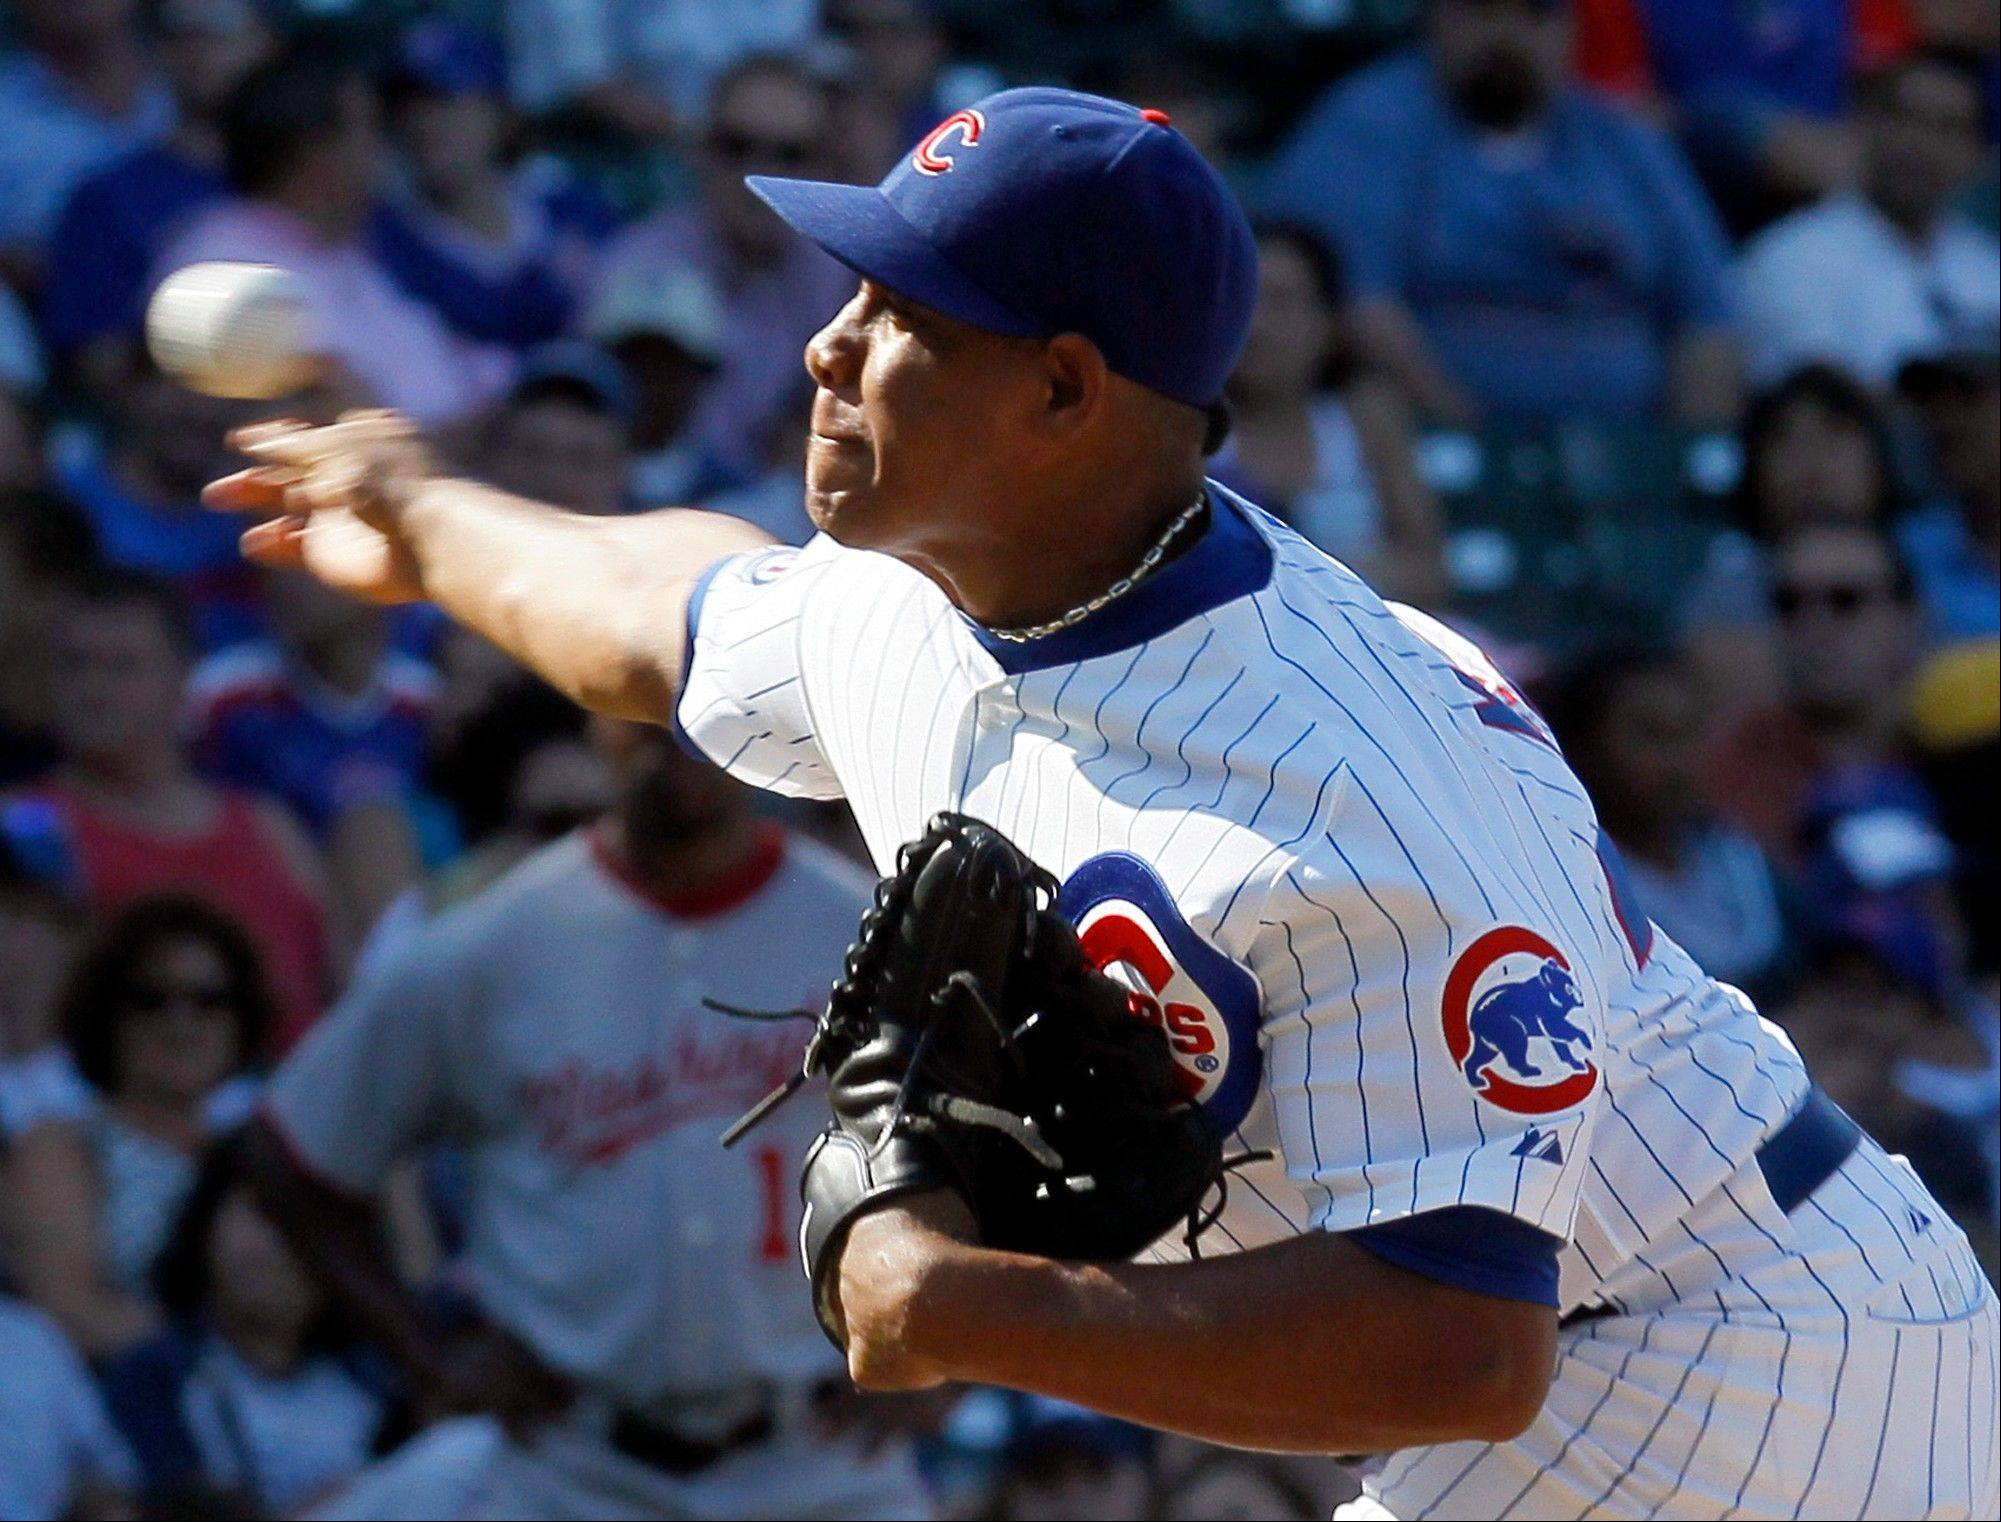 Carlos Marmol worked out of a bases-loaded, nobody-out jam and managed to pick up his 26th save as the Cubs beat the Nationals 4-3.